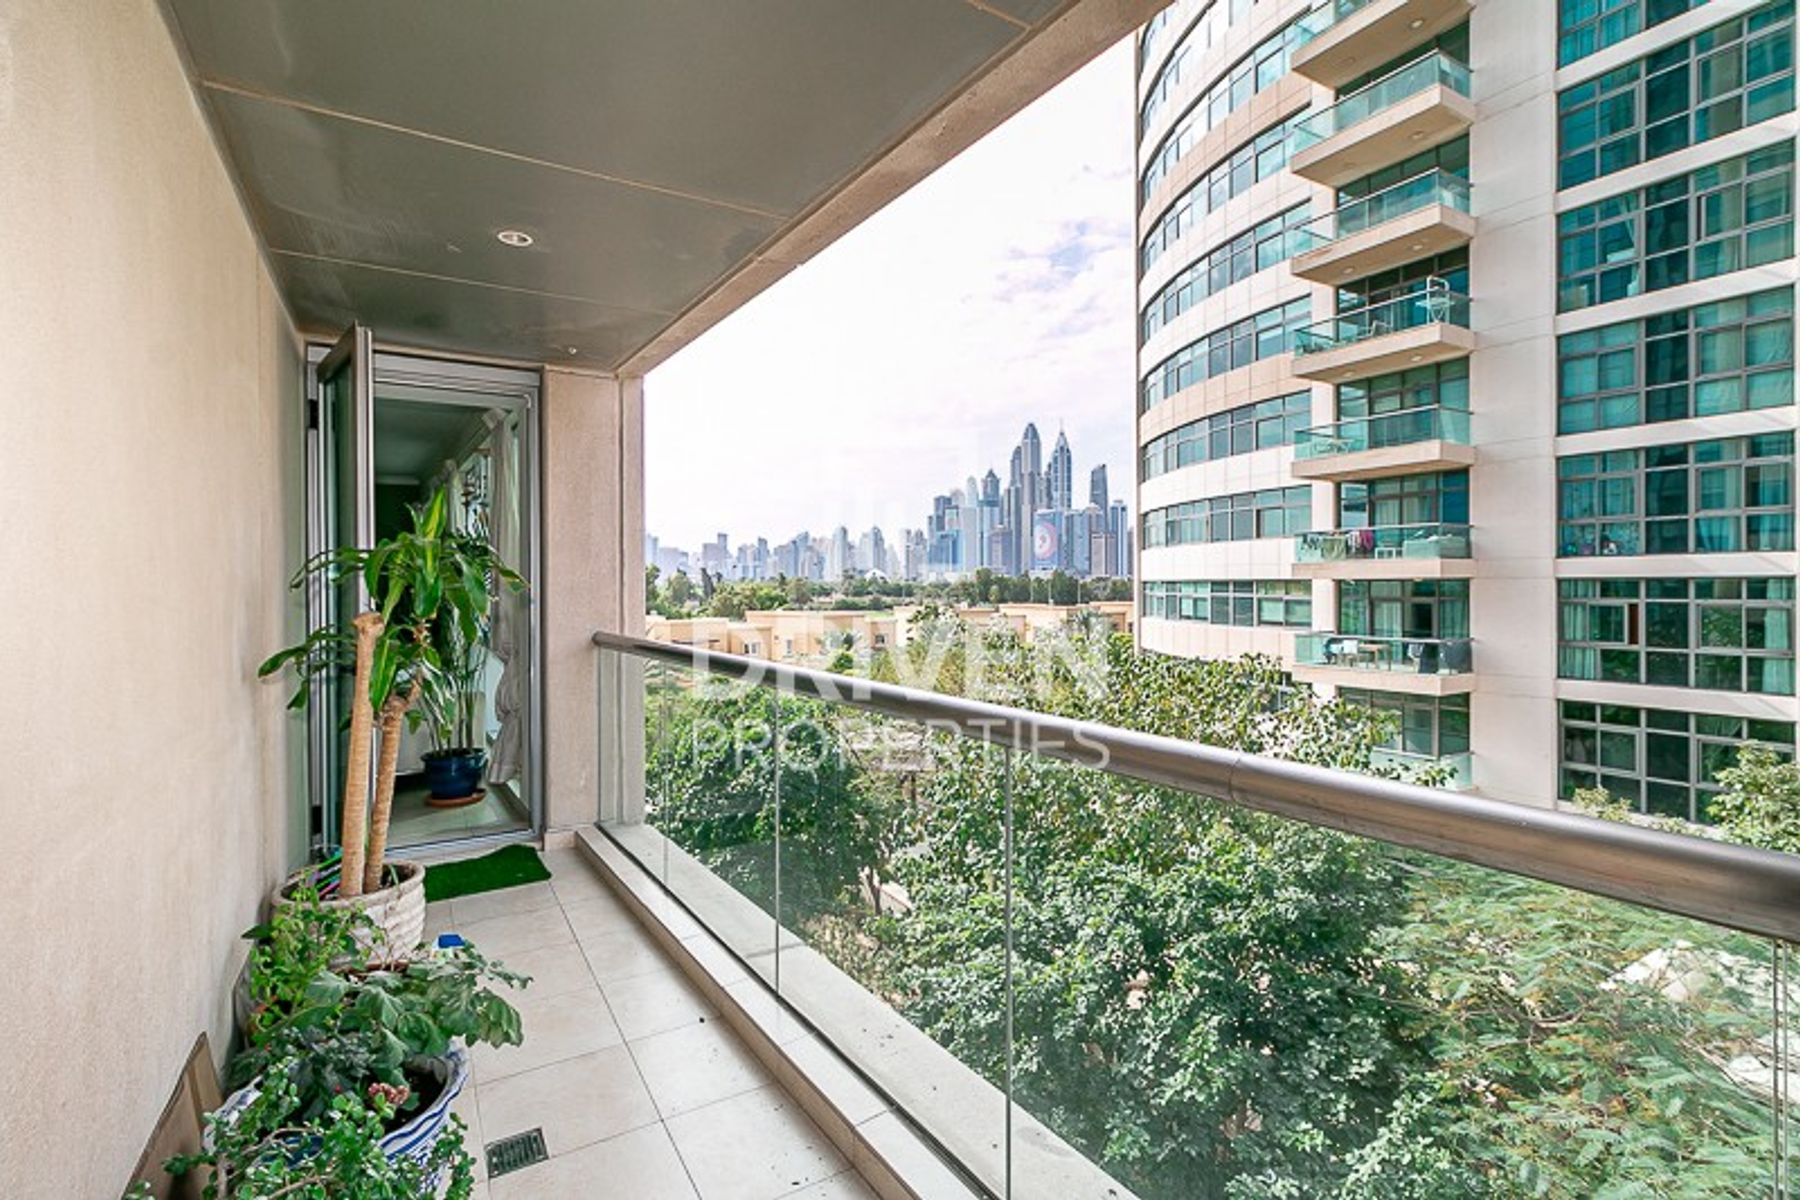 Apartment for Sale in The Fairways West - The Views